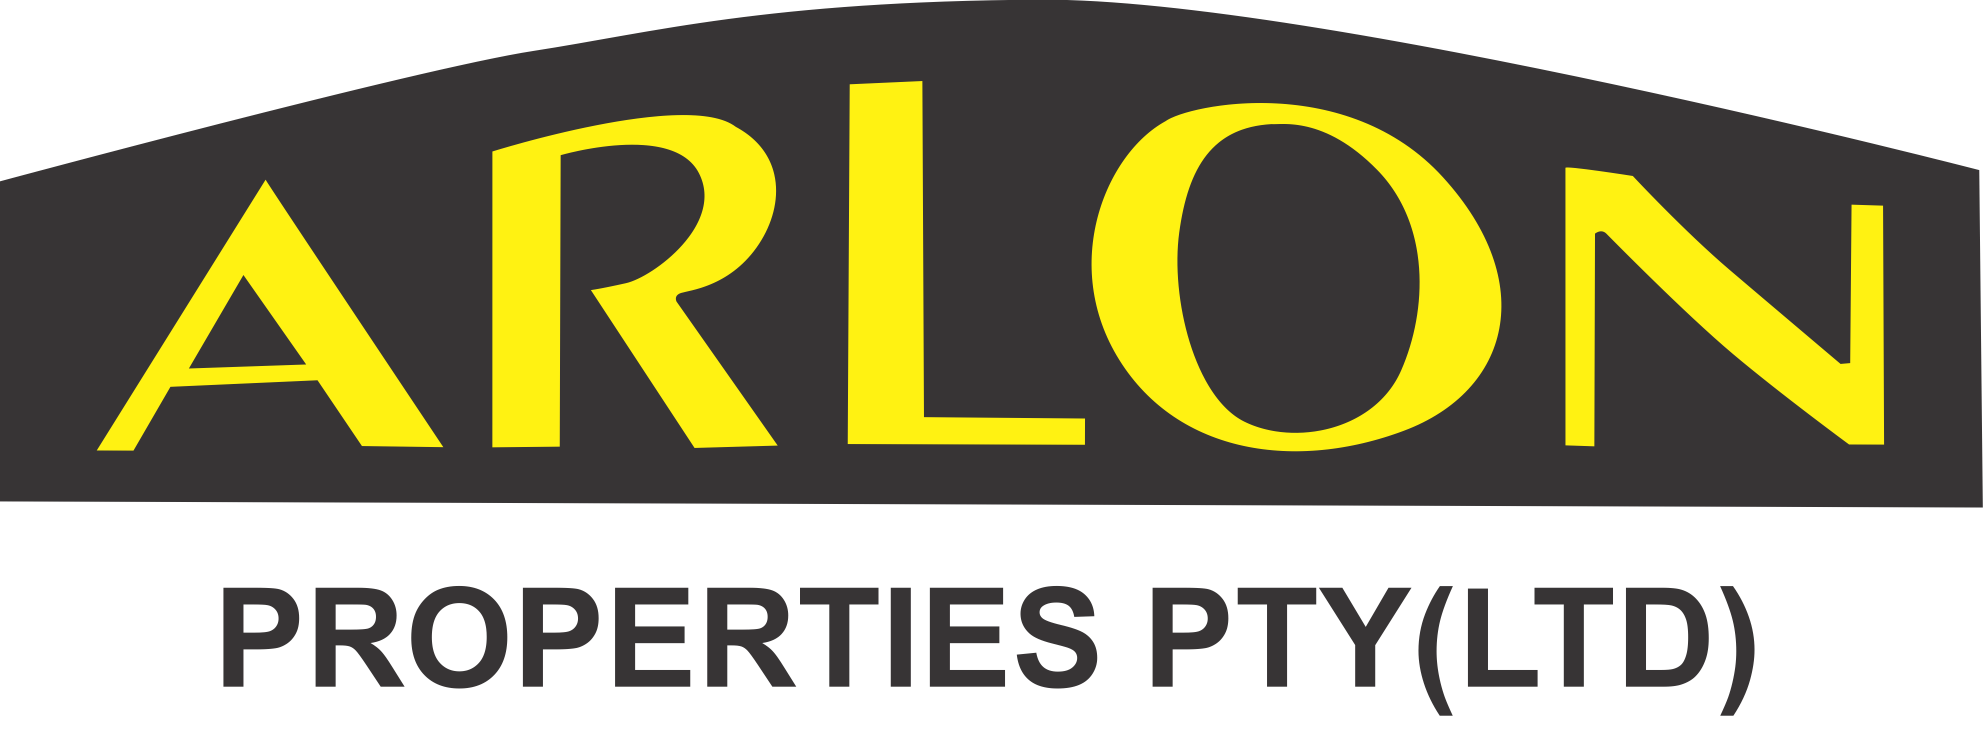 Arlon Properties